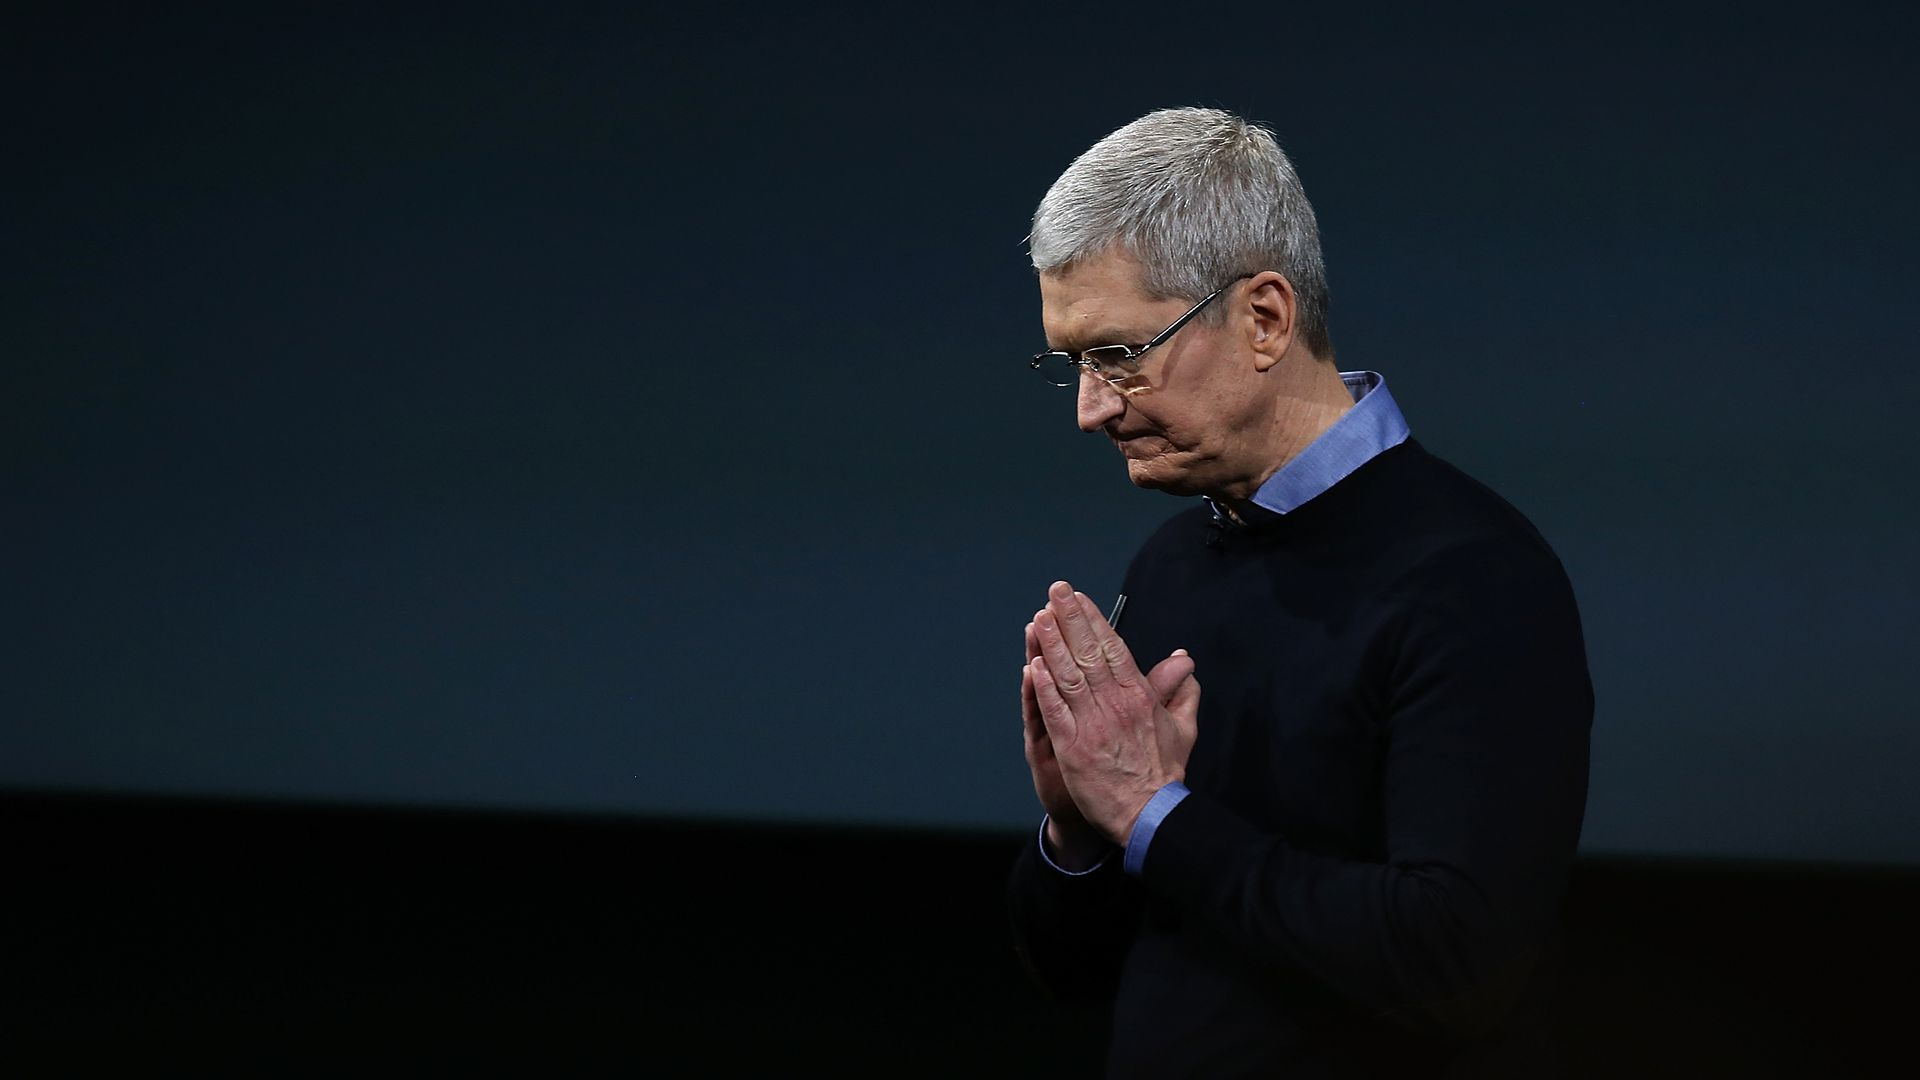 1920x1080 - Tim Cook Wallpapers 26